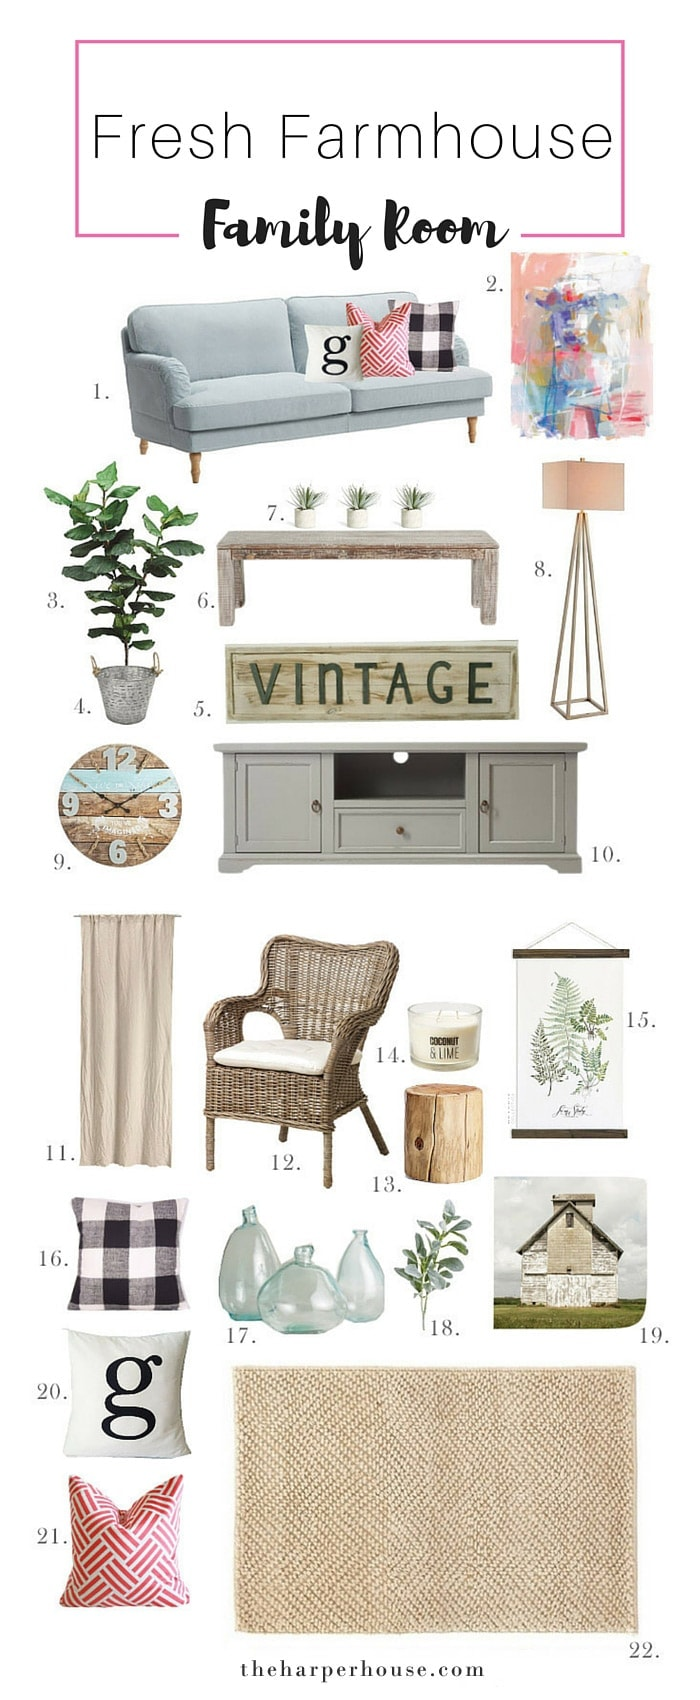 Add some #fixerupper style and a pop of color with mood boards! This fresh #farmhouse family room mood board is perfect for spring. Sources & links listed on the blog | theharperhouse.com